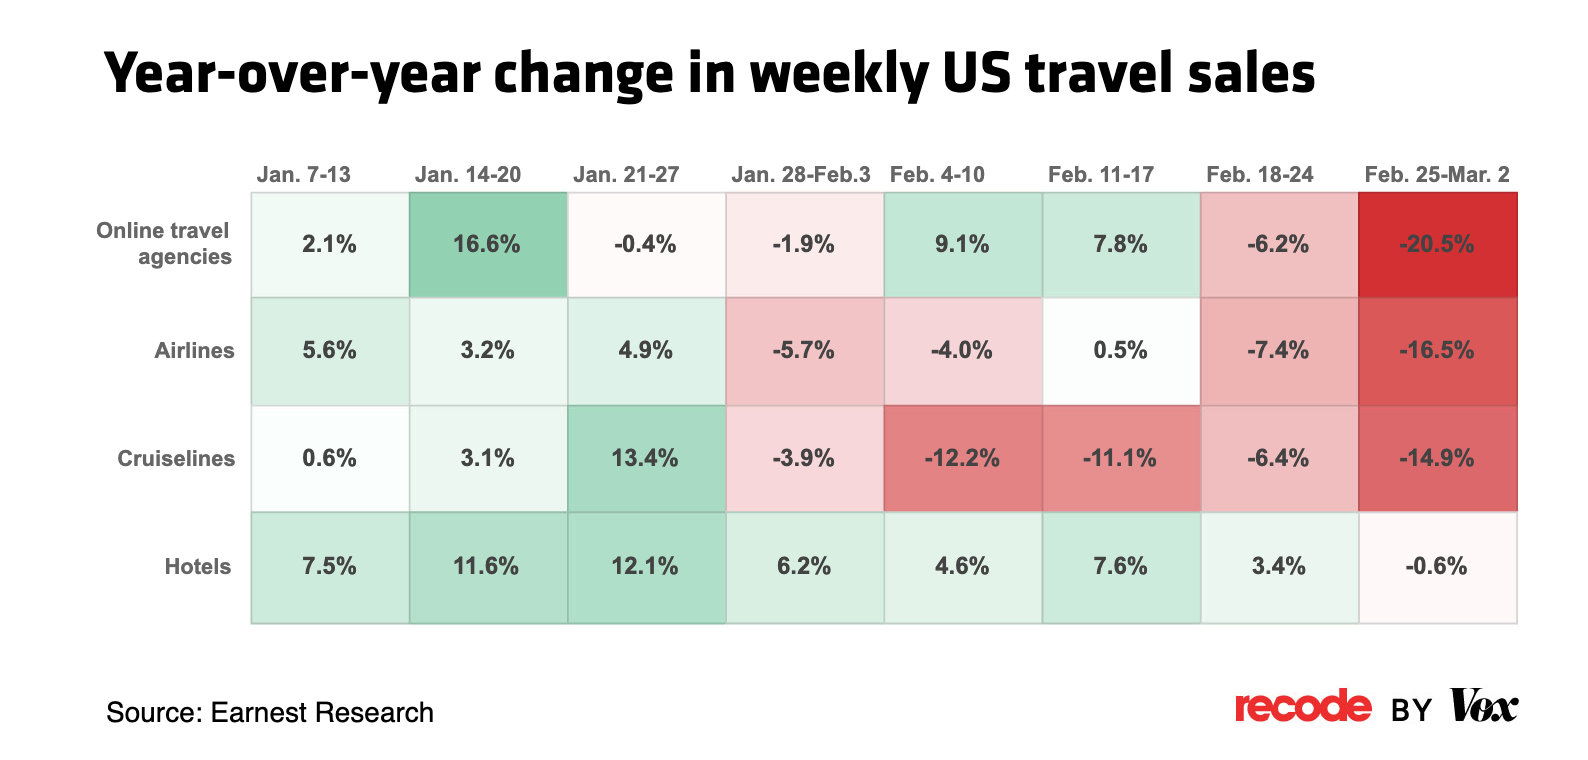 Year-over-year change in weekly US travel sales